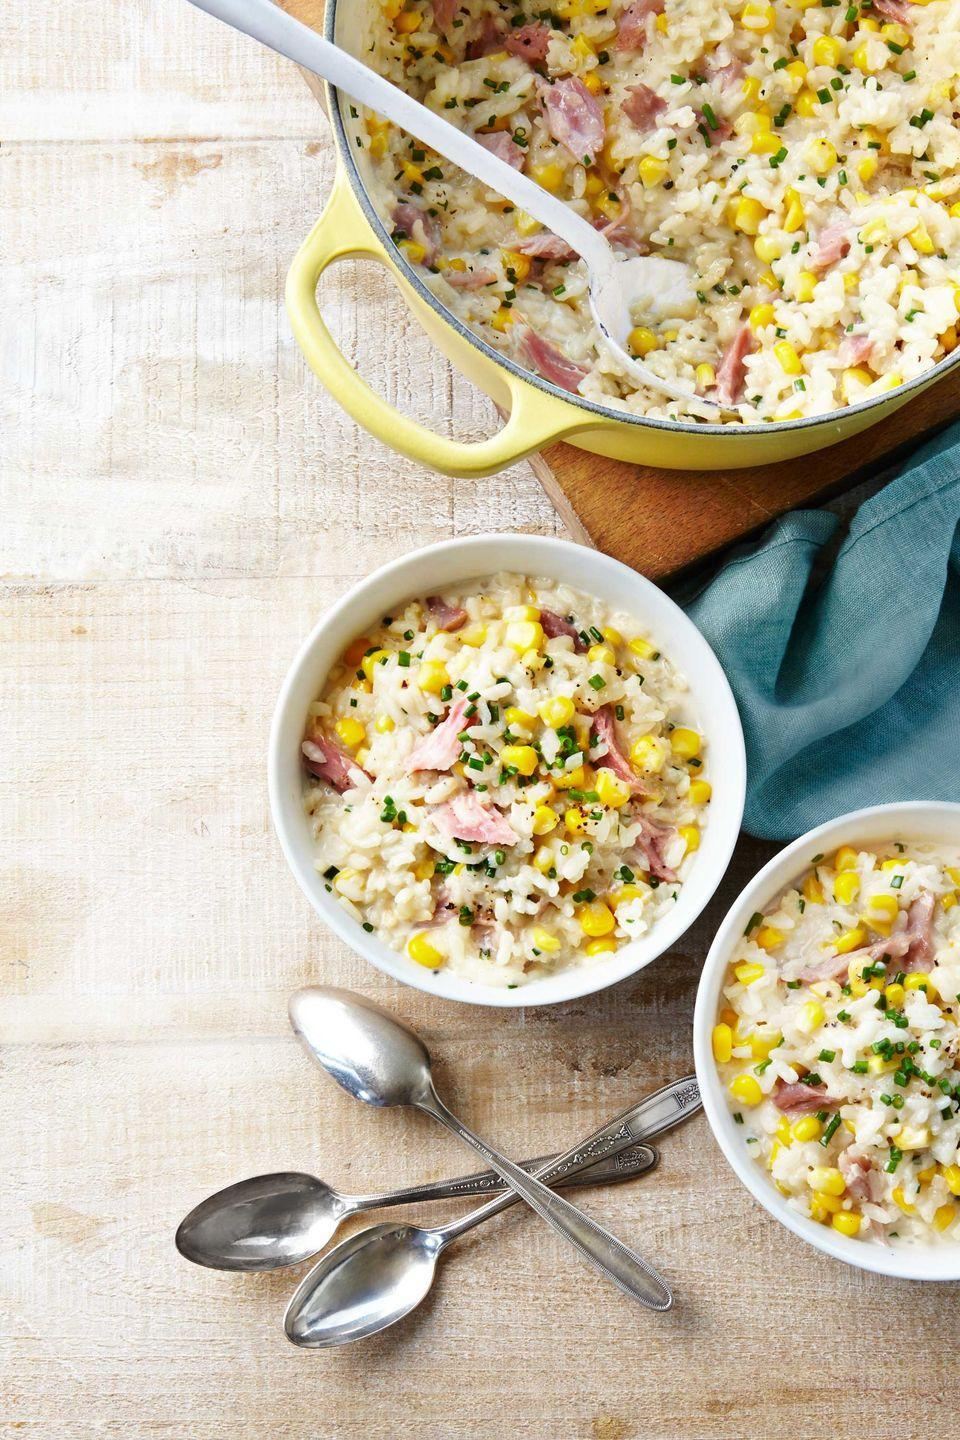 """<p>Risotto makes for not-too-leftover-y leftovers because you can serve it in patty form the next go-round. Fry in oil or butter for a few minutes for a delicious turn of events.<br></p><p><strong><a href=""""https://www.countryliving.com/food-drinks/recipes/a39368/corn-and-ham-risotto-recipe/"""" rel=""""nofollow noopener"""" target=""""_blank"""" data-ylk=""""slk:Get the recipe"""" class=""""link rapid-noclick-resp"""">Get the recipe</a>.</strong> </p>"""